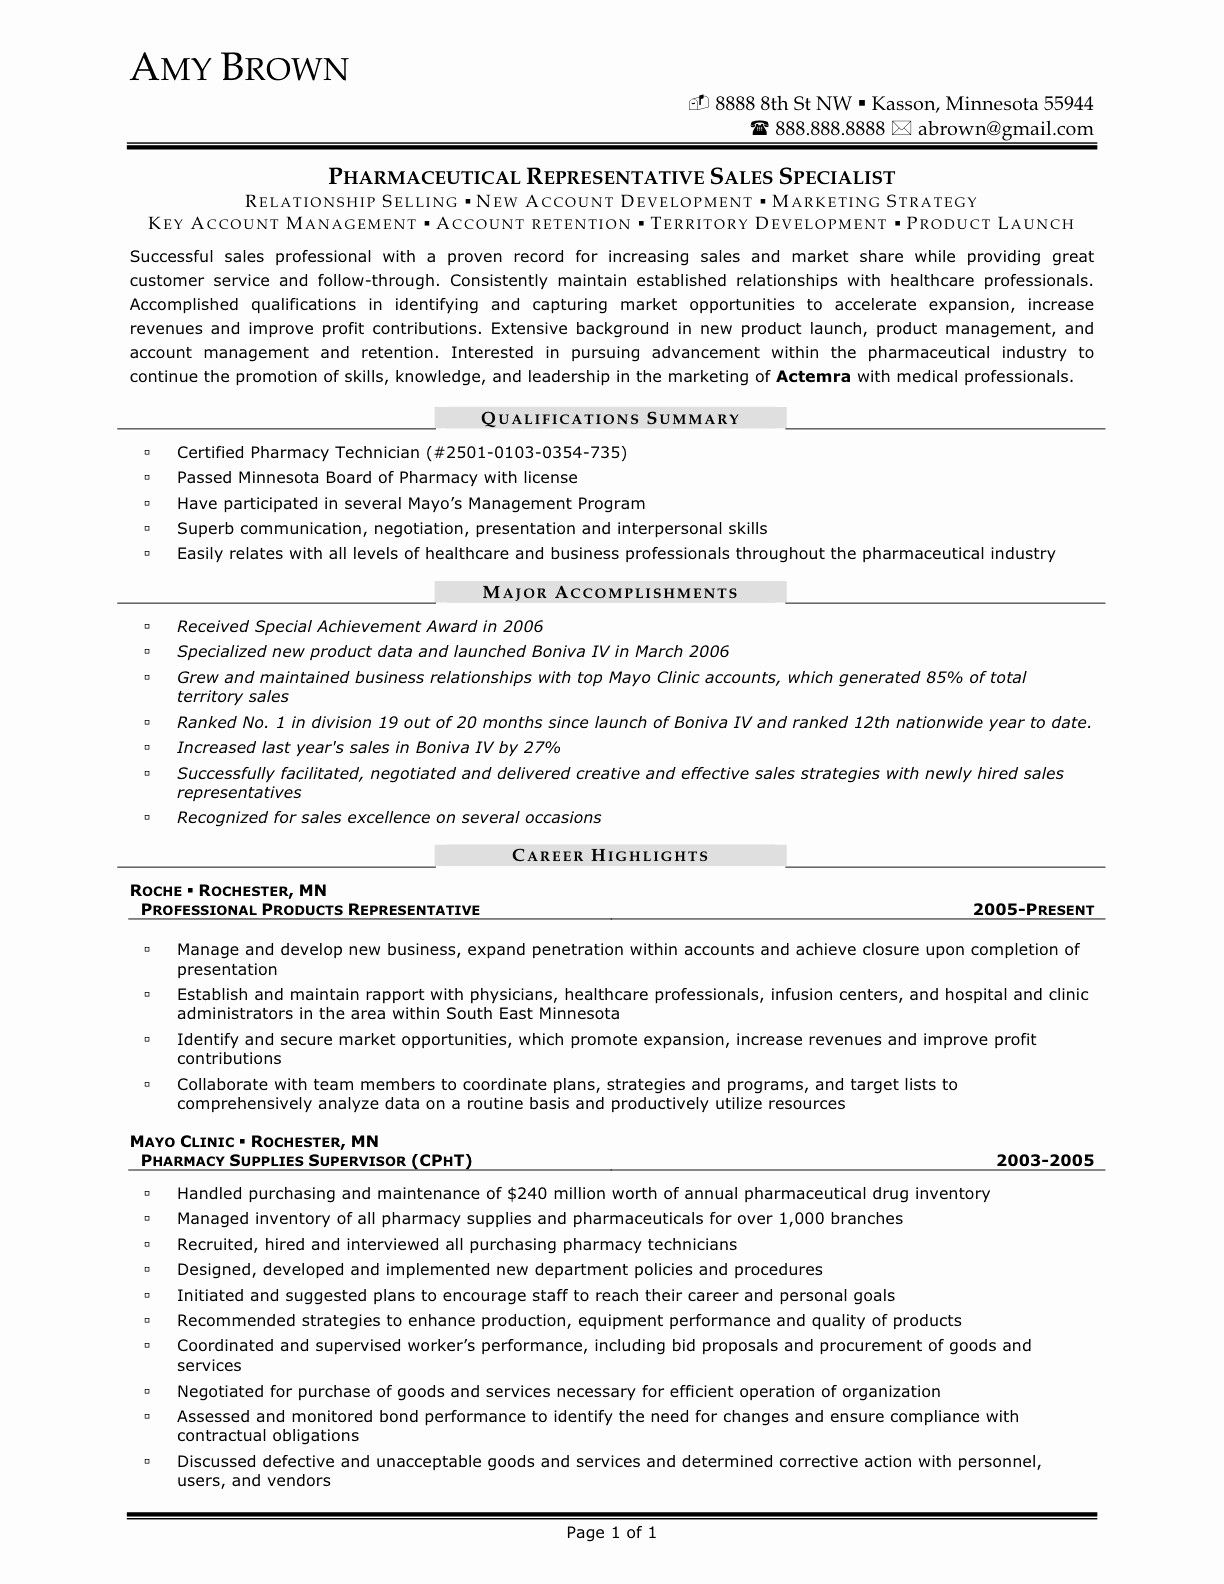 Lovely Sales Rep Resume Examples Best Best Sales Sales Resume Examples Pharmaceutical Sales Resume Pharmaceutical Sales